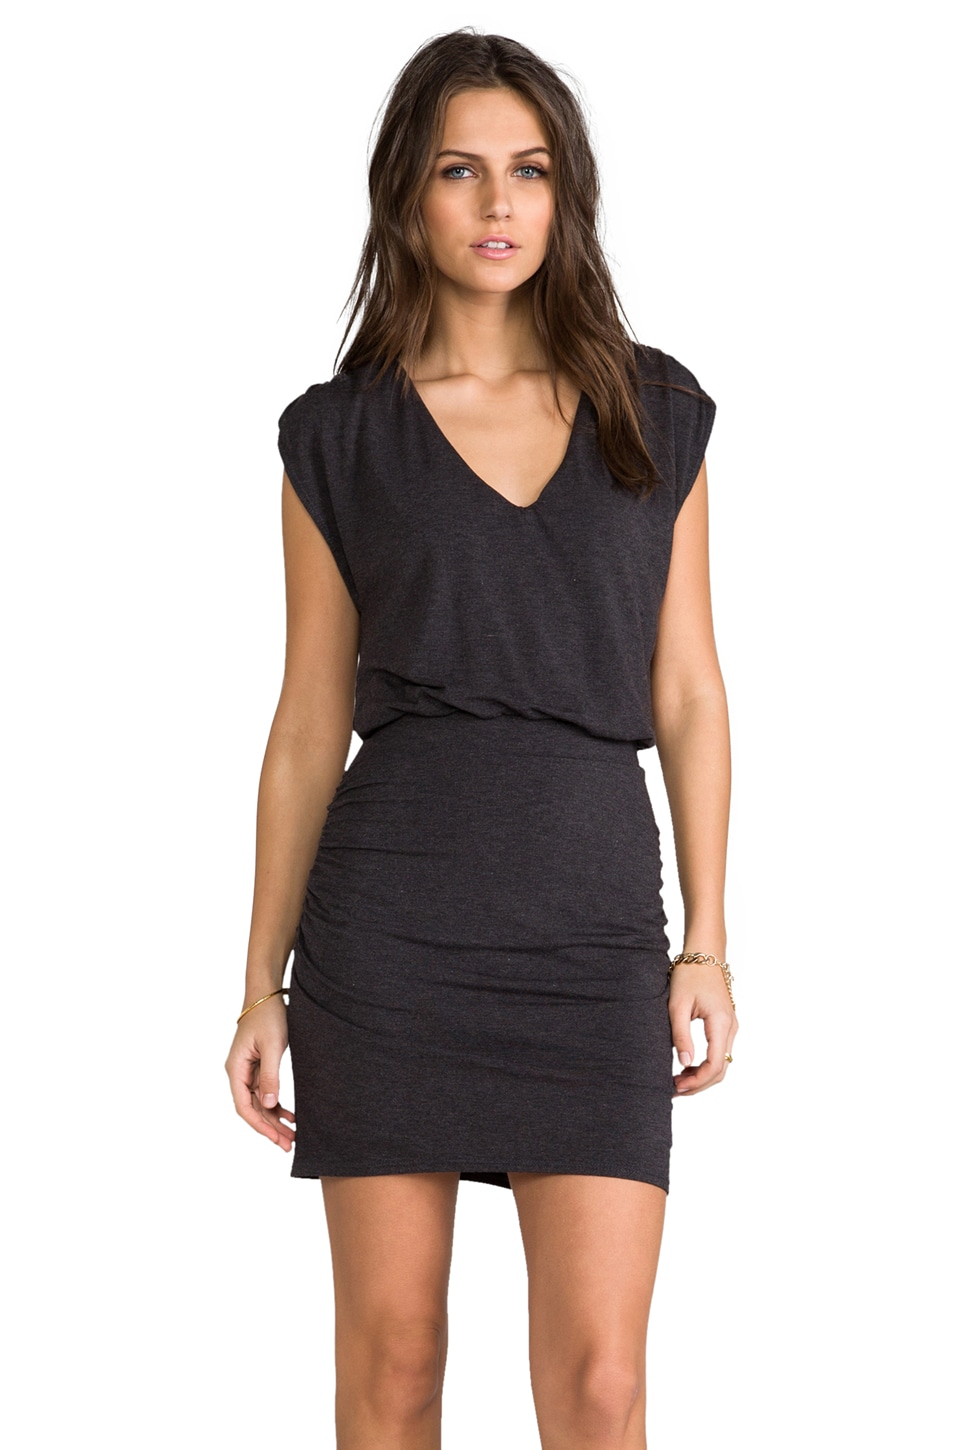 Heather Chandelier Mini Dress in Heather Black